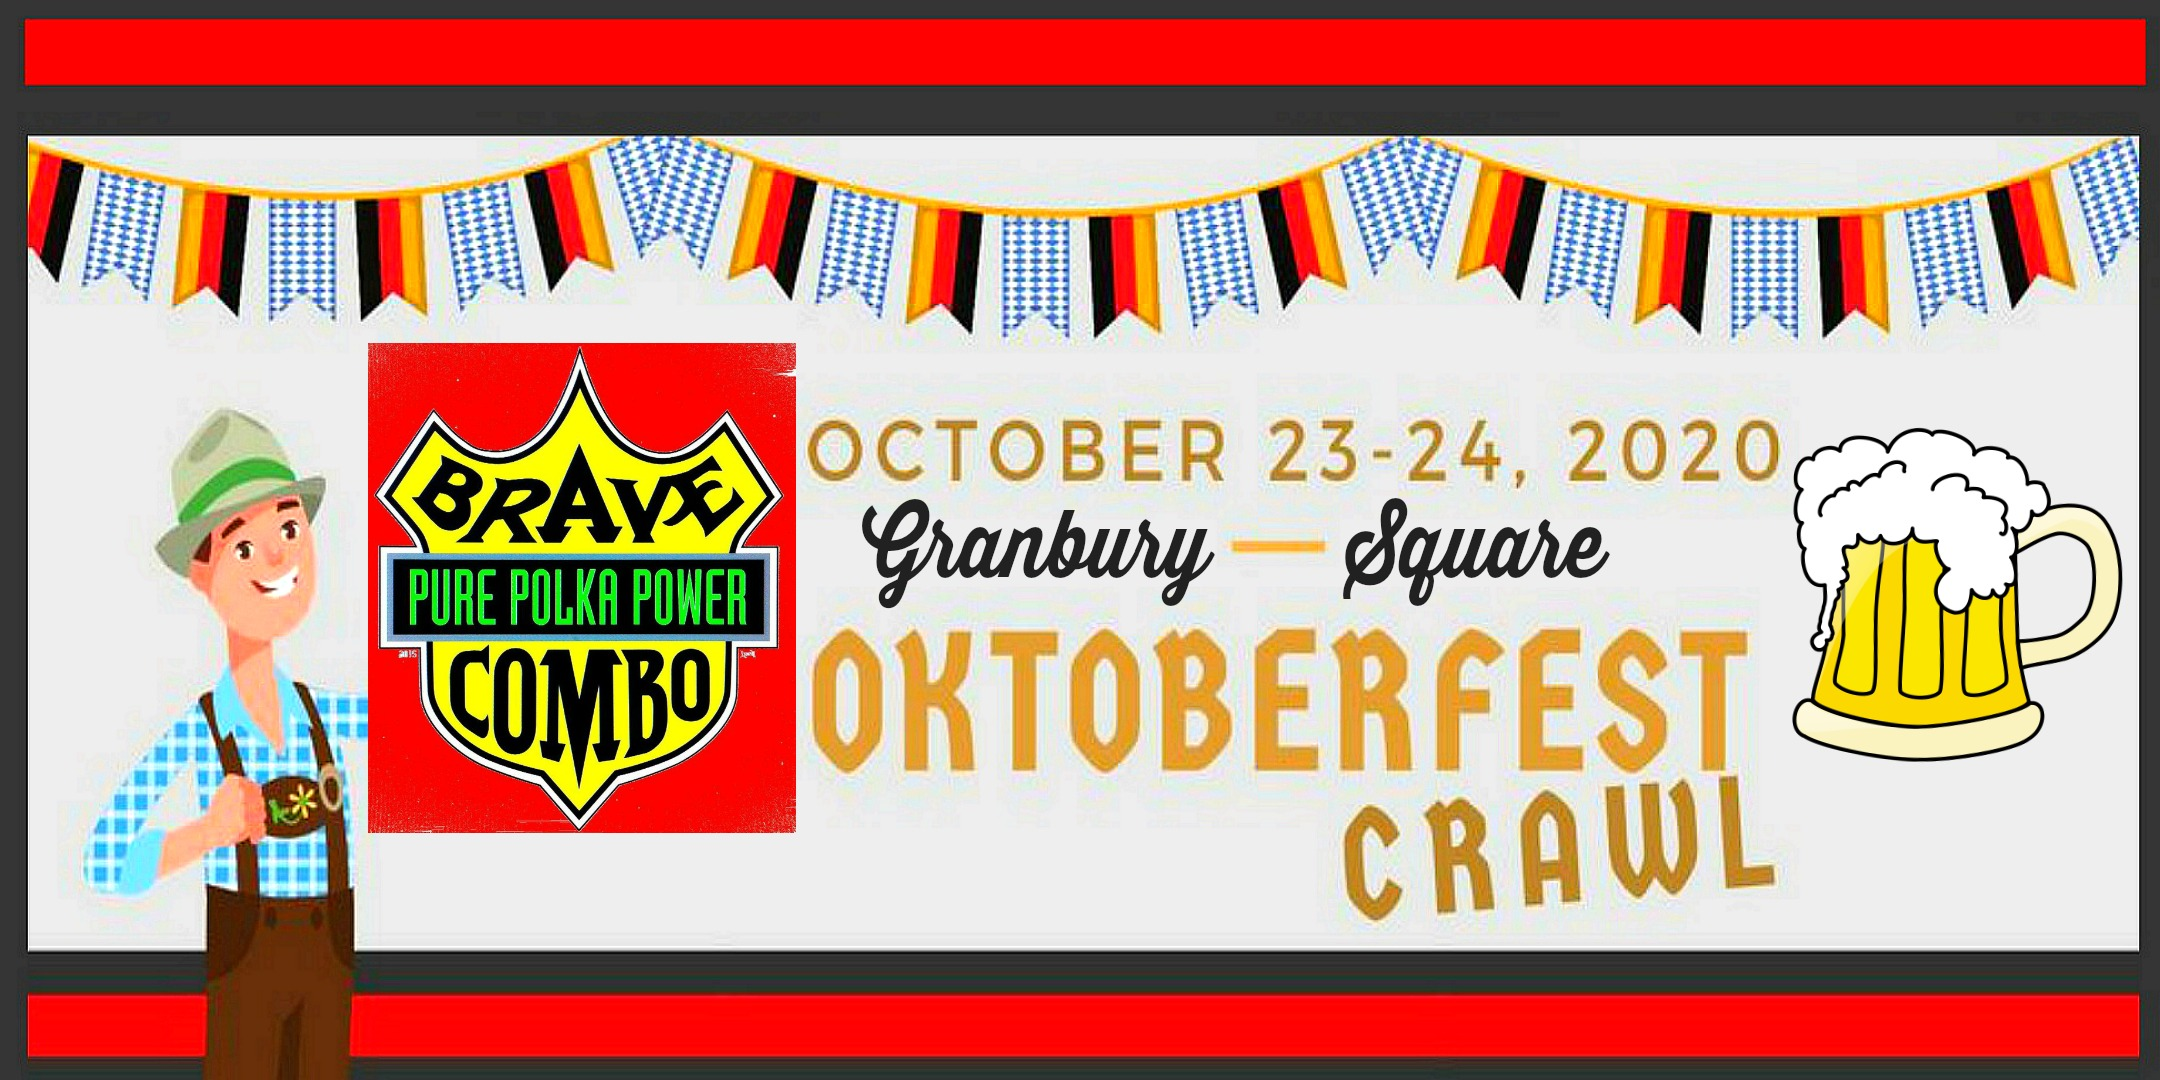 Granbury Oktoberfest & Crawl @ Granbury Square Plaza